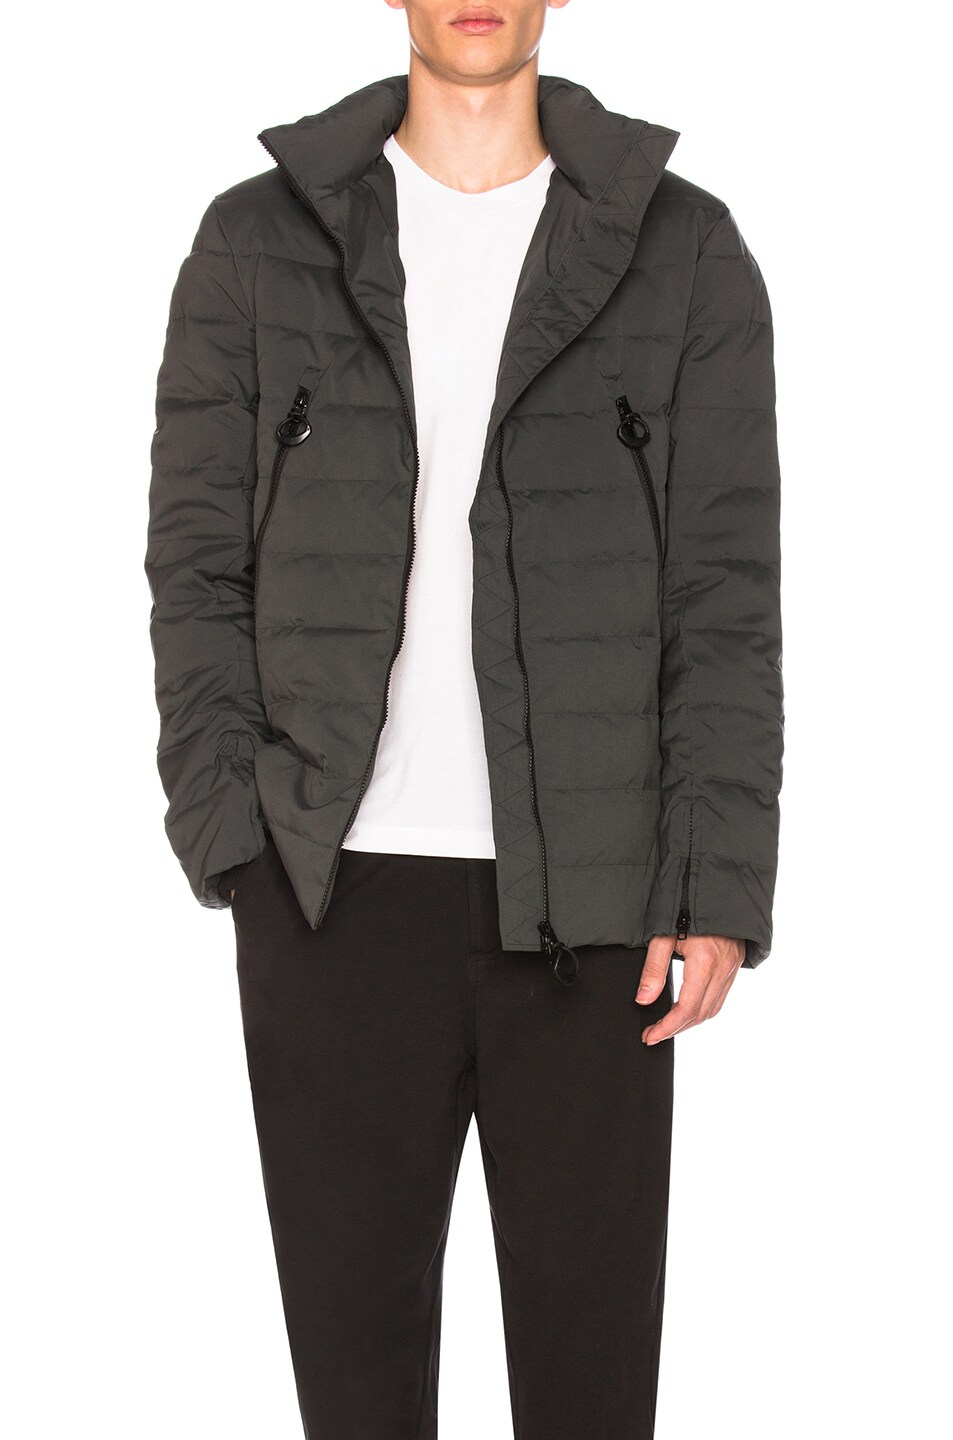 Image 1 of Y-3 Yohji Yamamoto Matte Down Jacket in Solid Grey 58dbe2a16742d